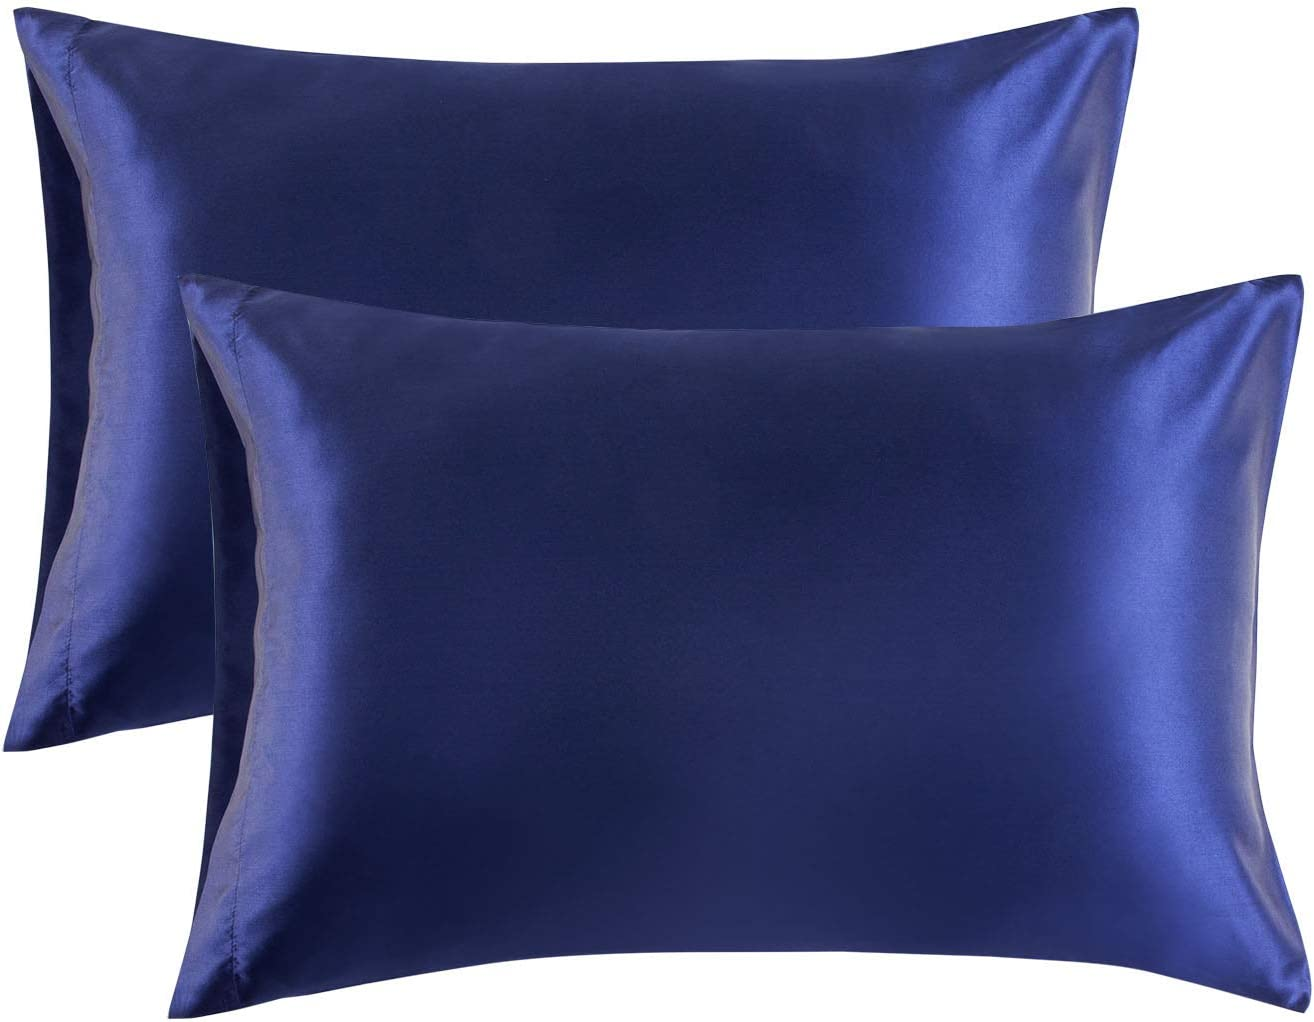 Bedsure Satin Pillowcase for Hair and Skin, 2-Pack - Queen Size (20x30 inches) Pillow Cases - Satin Pillow Covers with Envelope Closure, Navy Blue